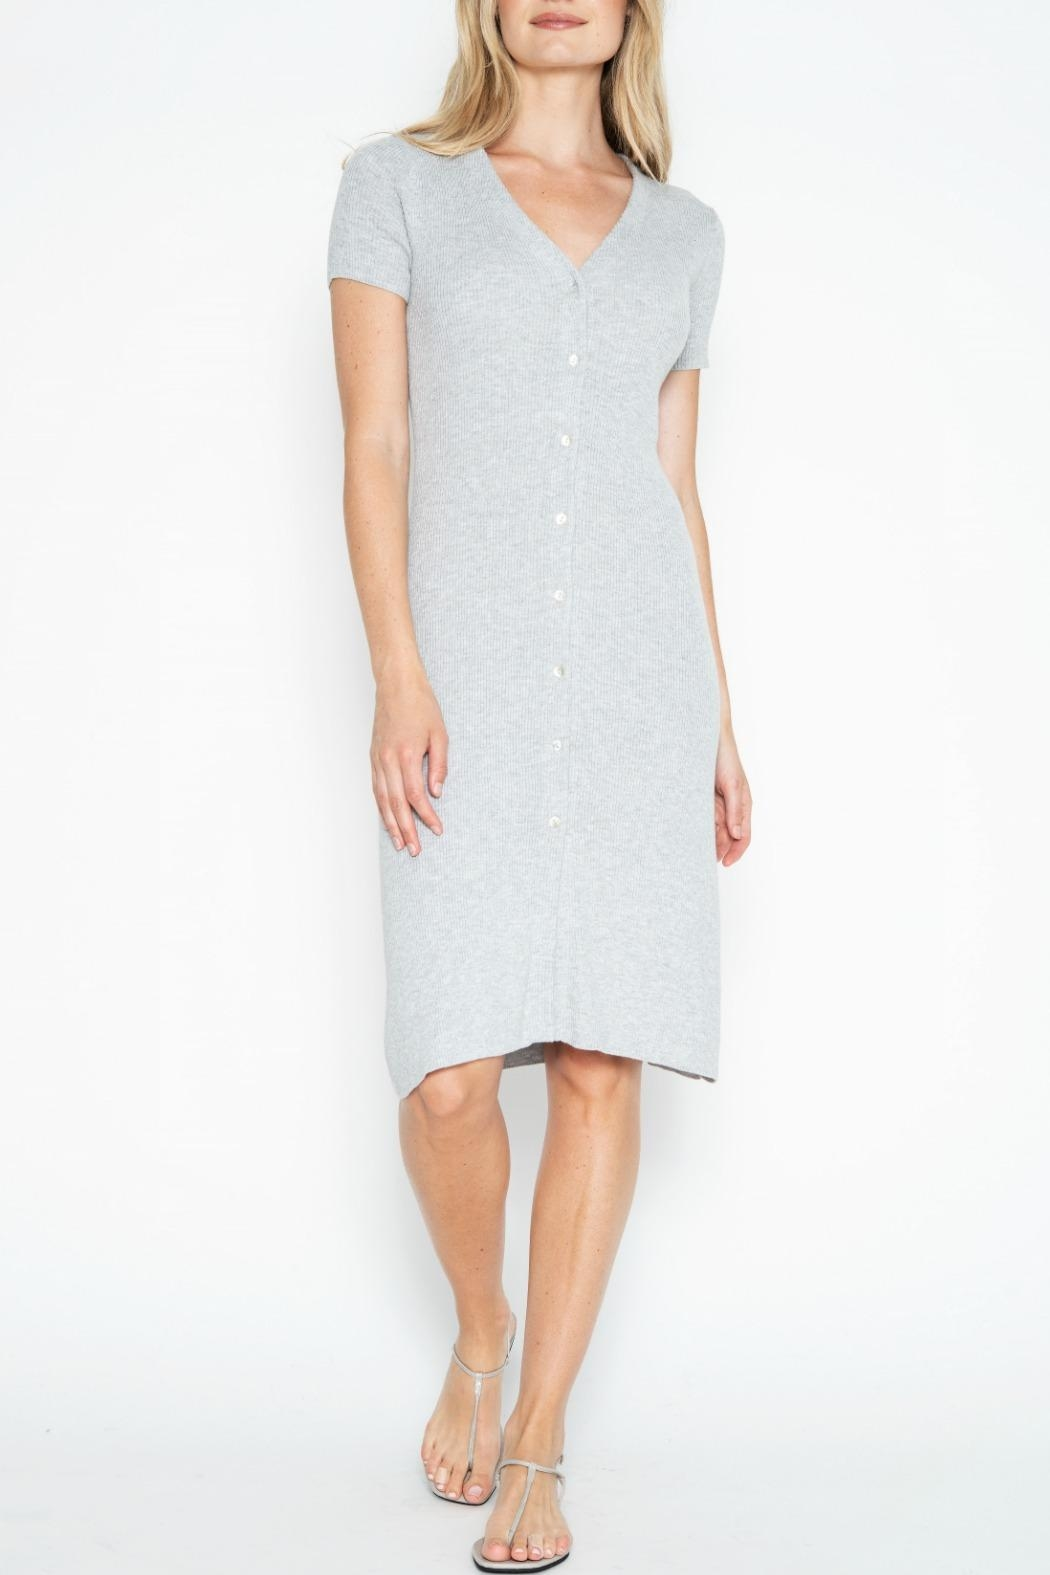 One Grey Day Quentin Dress - Main Image